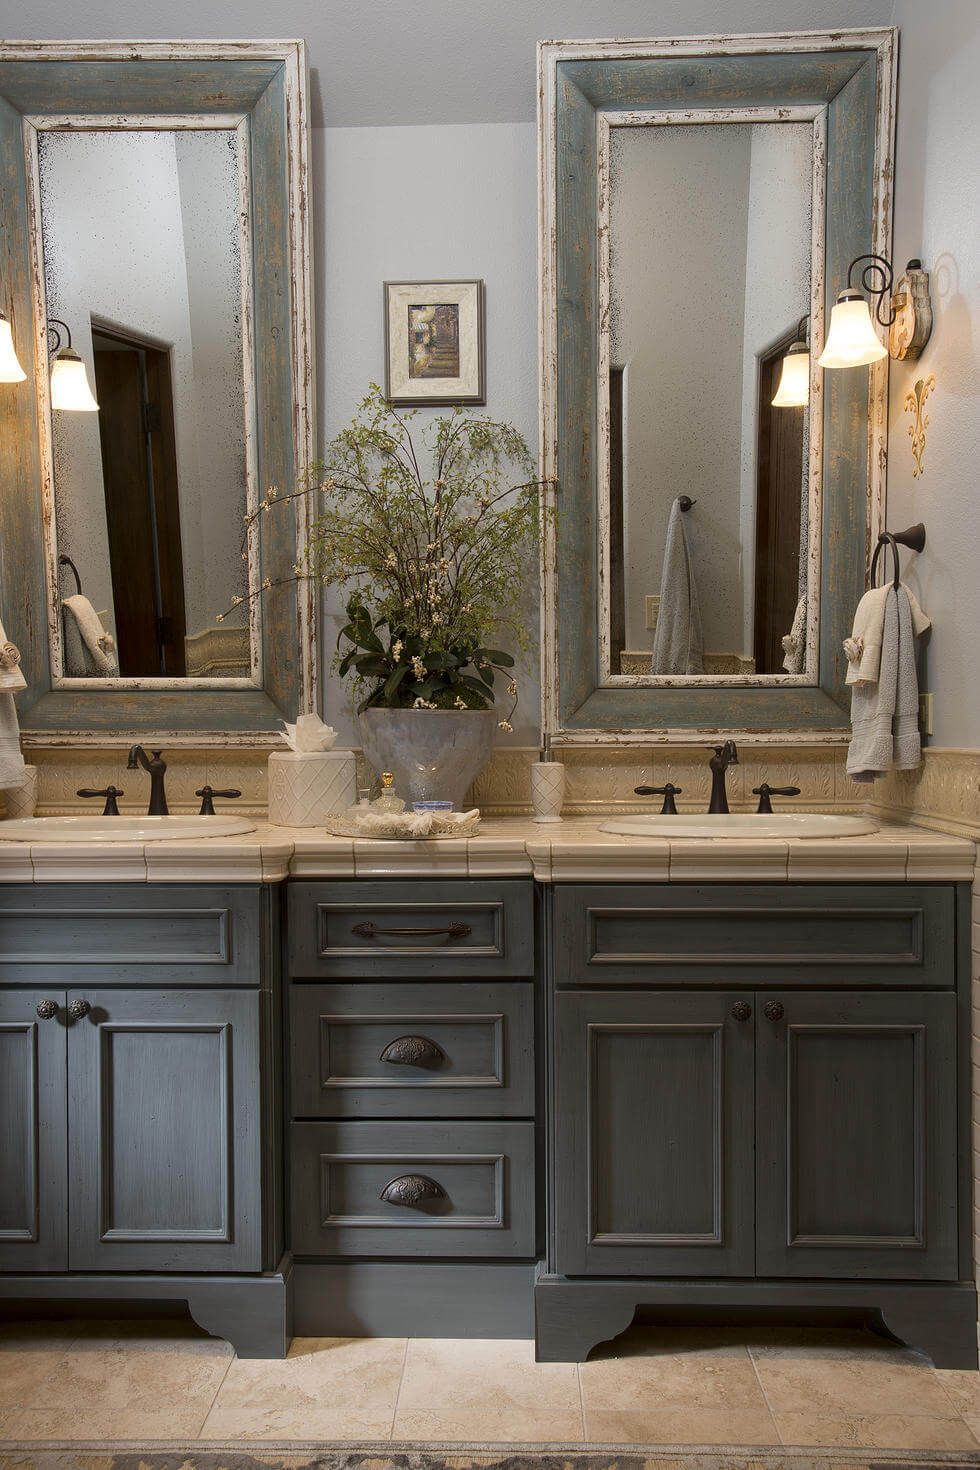 Rustic modern master bathroom interior design - Master bathroom design and interior guide ...